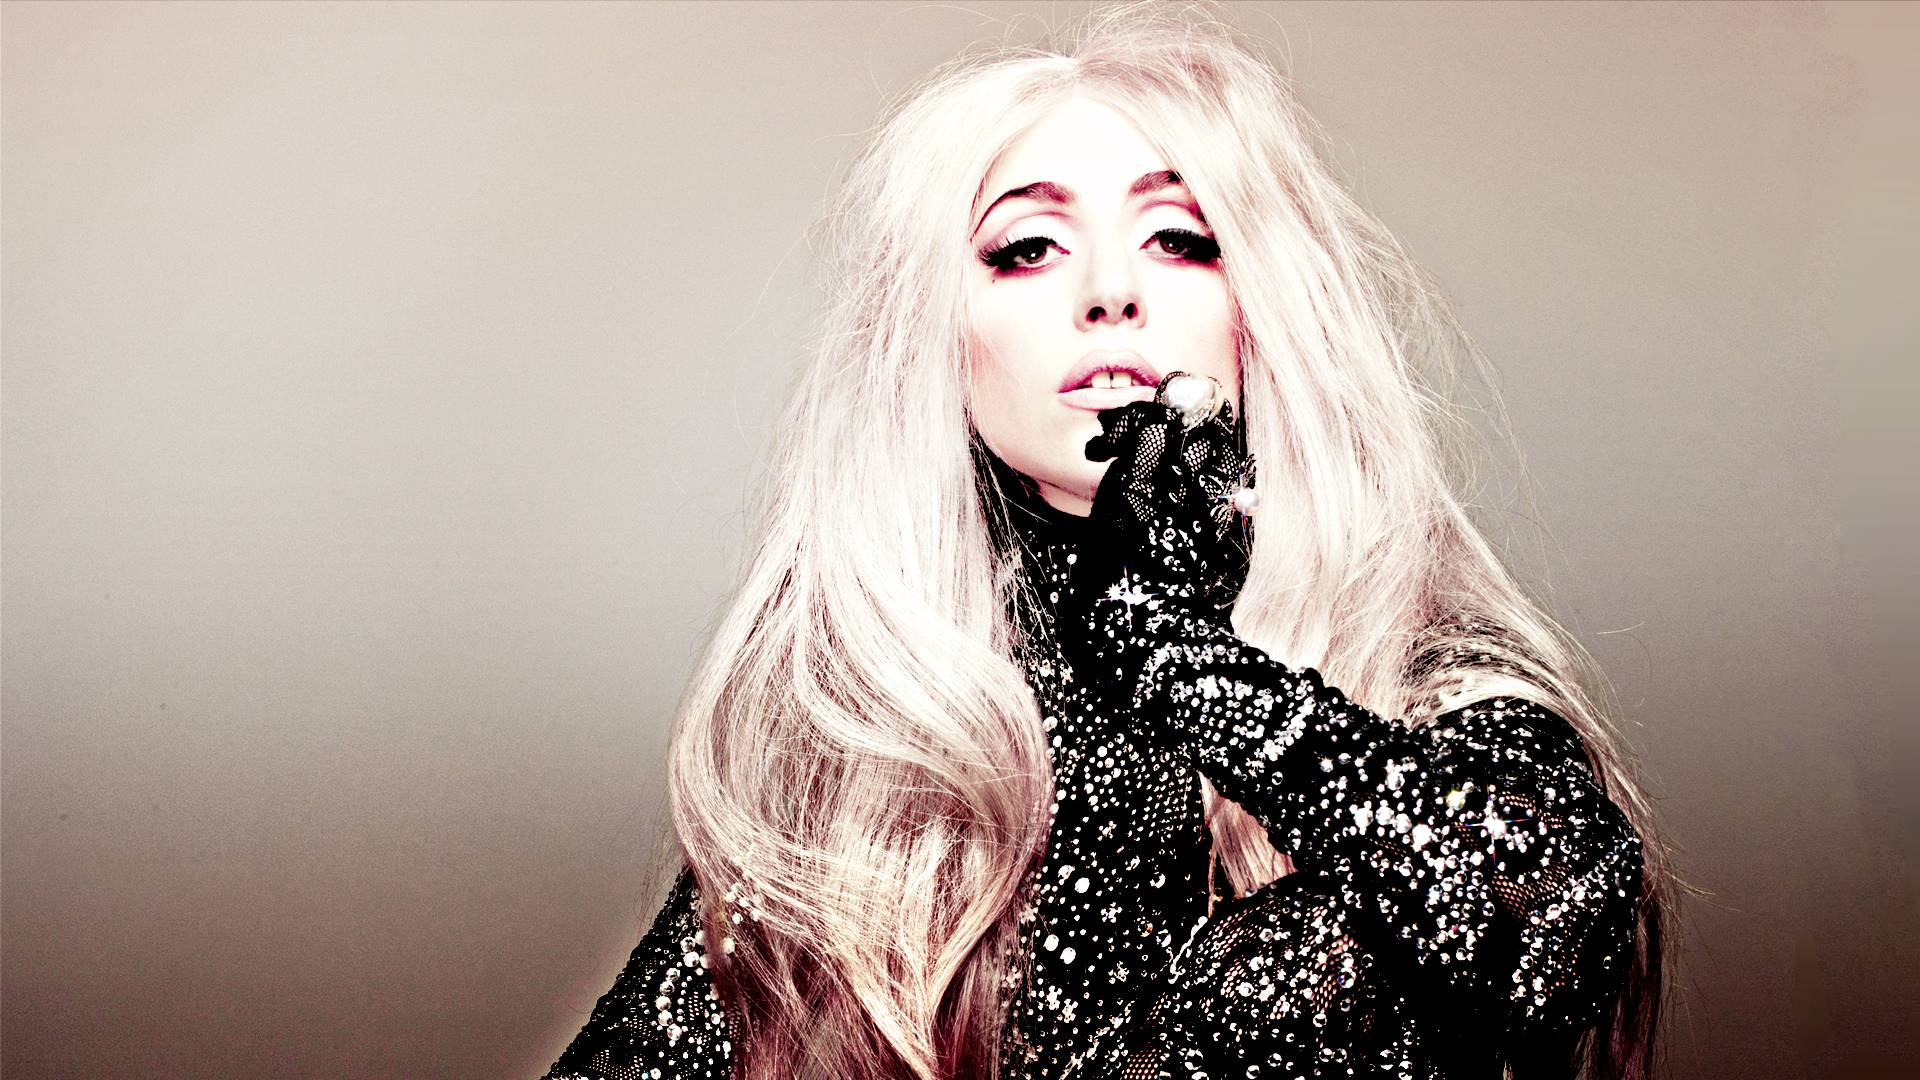 Lady Gaga Wallpapers 2016 - Wallpaper Cave